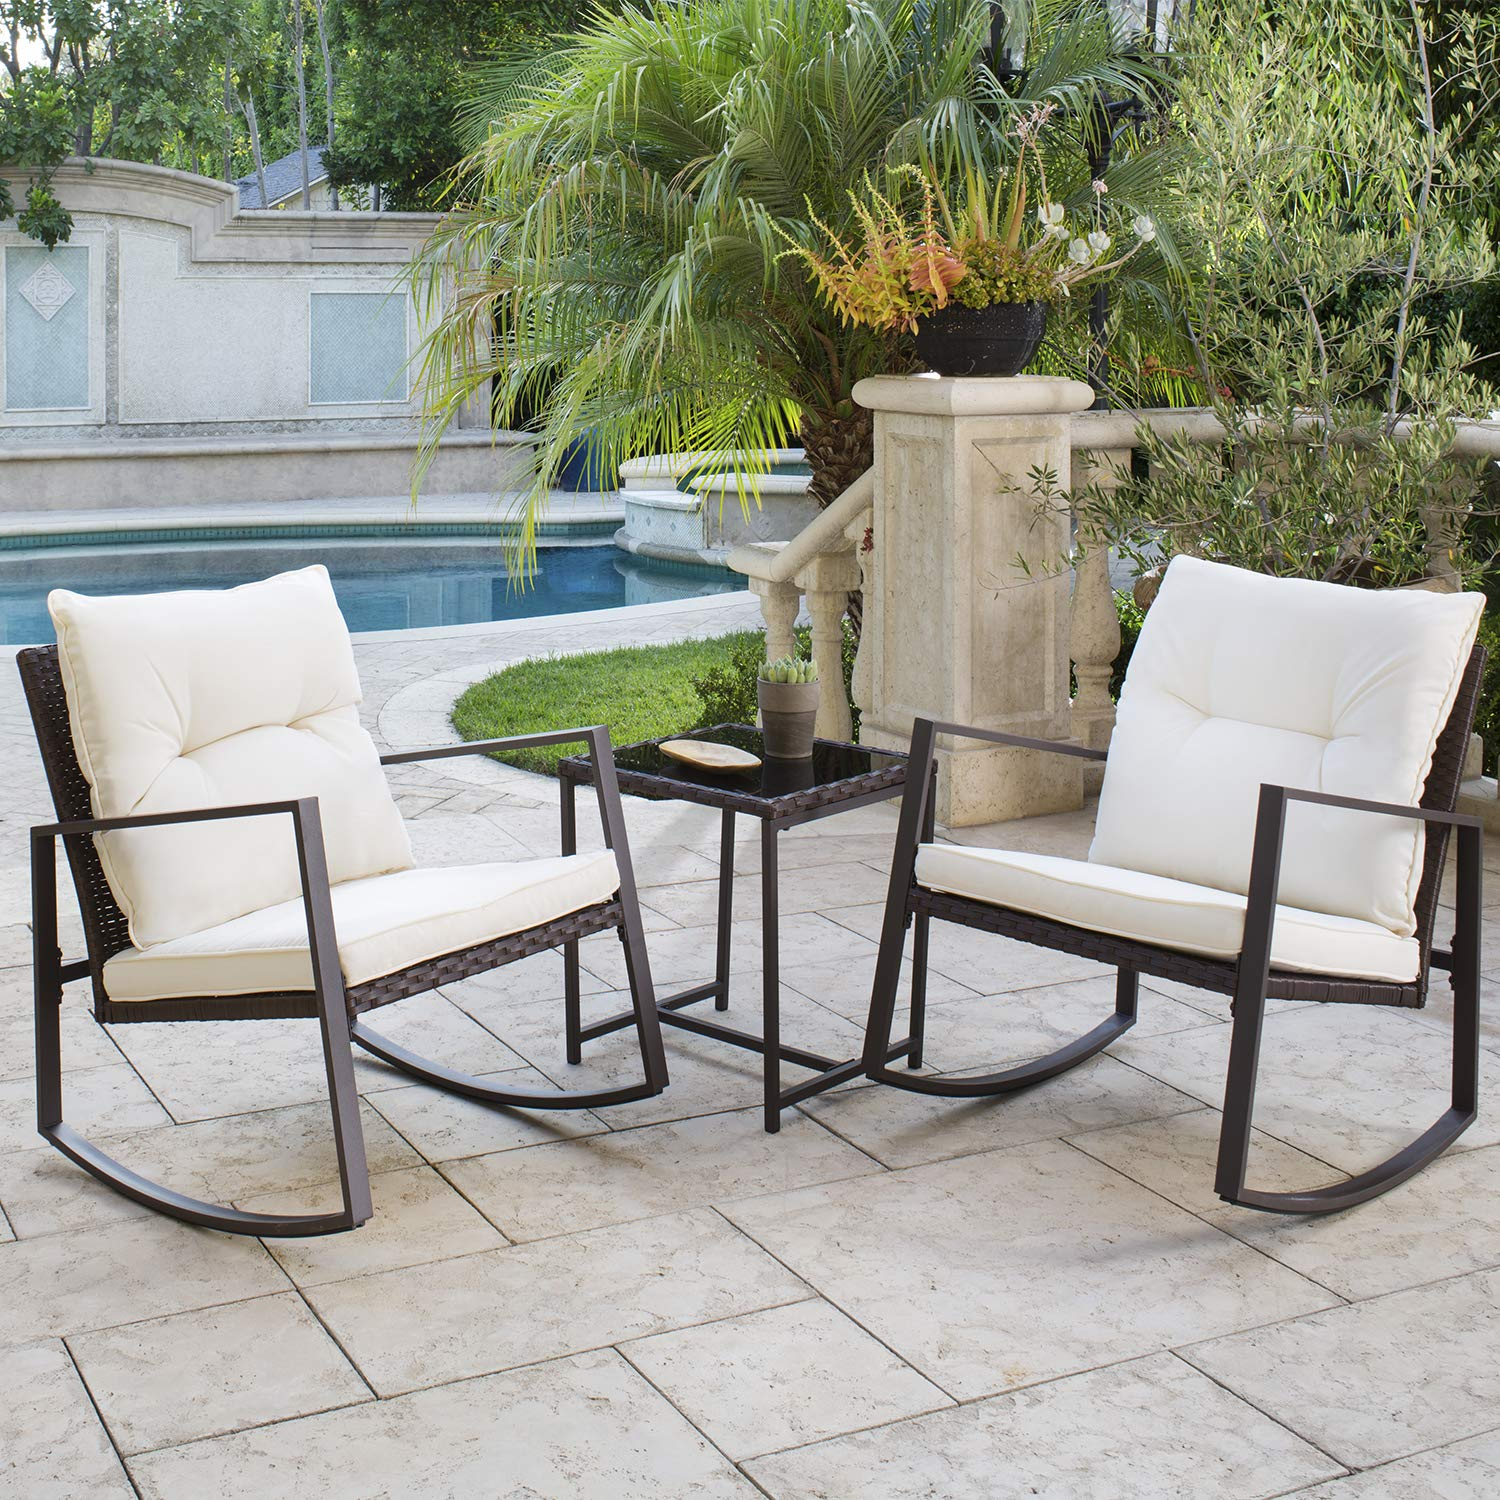 Solaura Outdoor Furniture 3-Piece Bistro Set Brown Wicker Patio Rocking Chairs with Beige Cushions & Glass Coffee Table